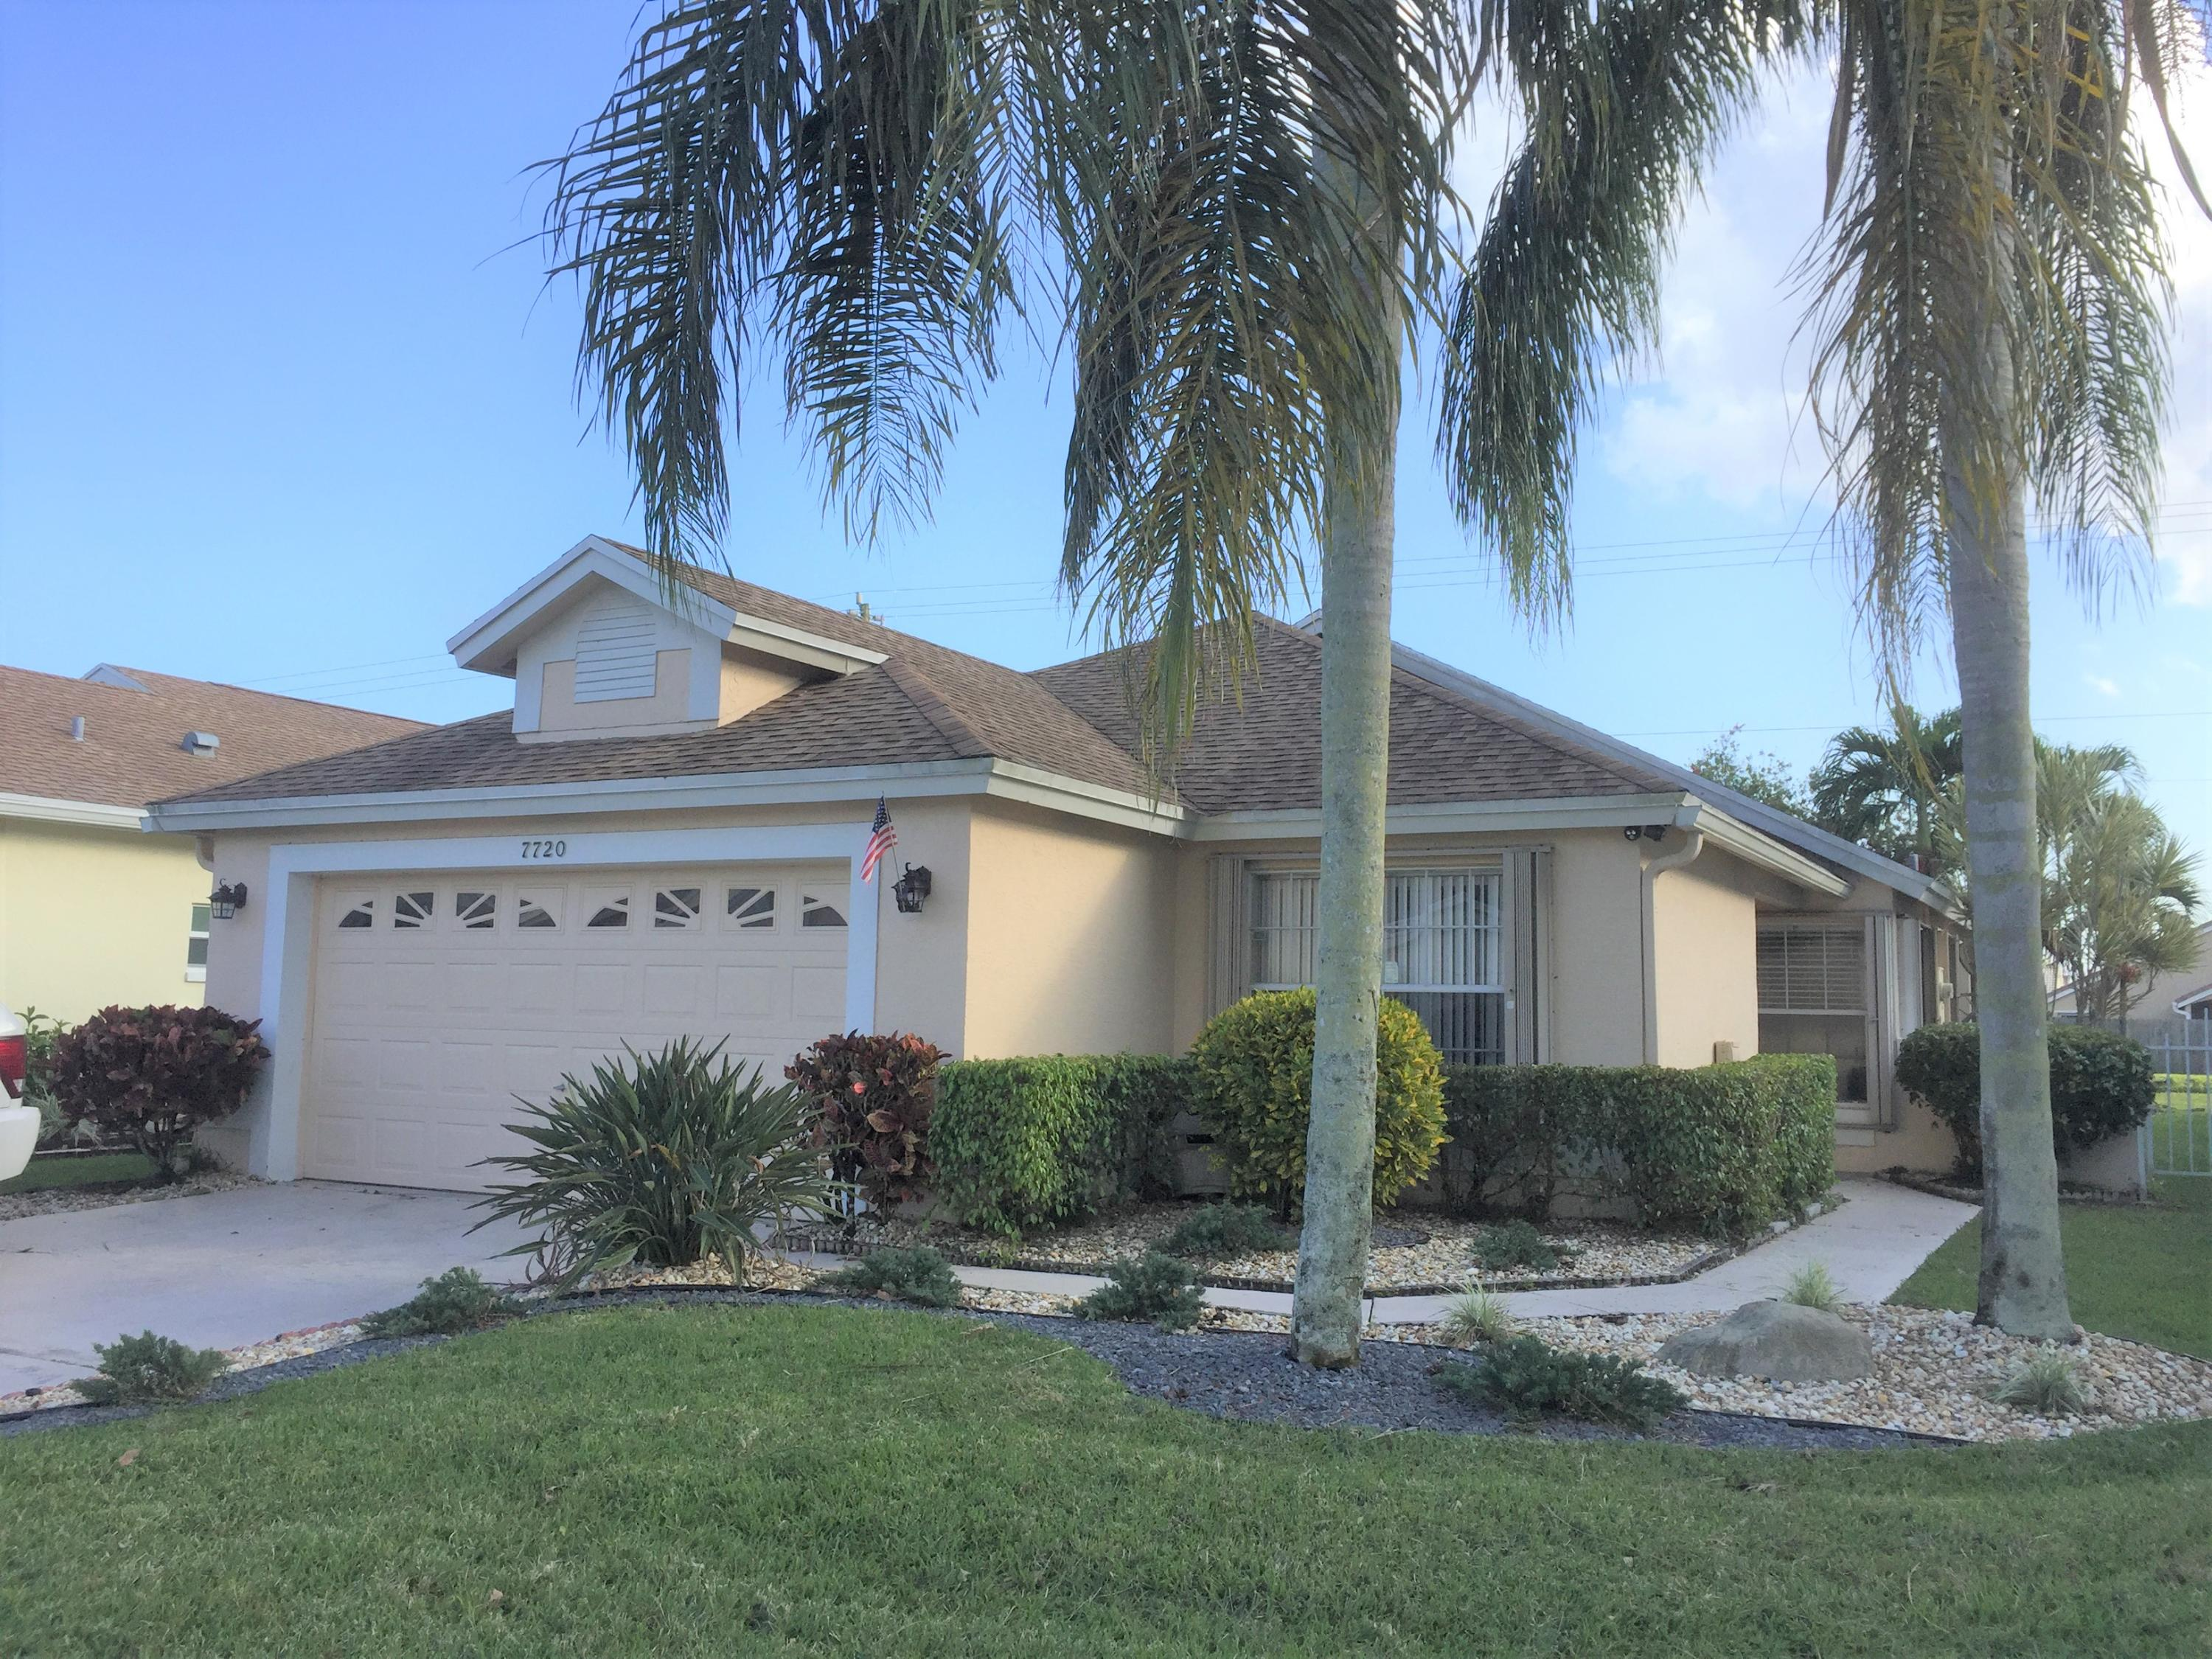 7720 Mansfield Hollow Road  Delray Beach, FL 33446